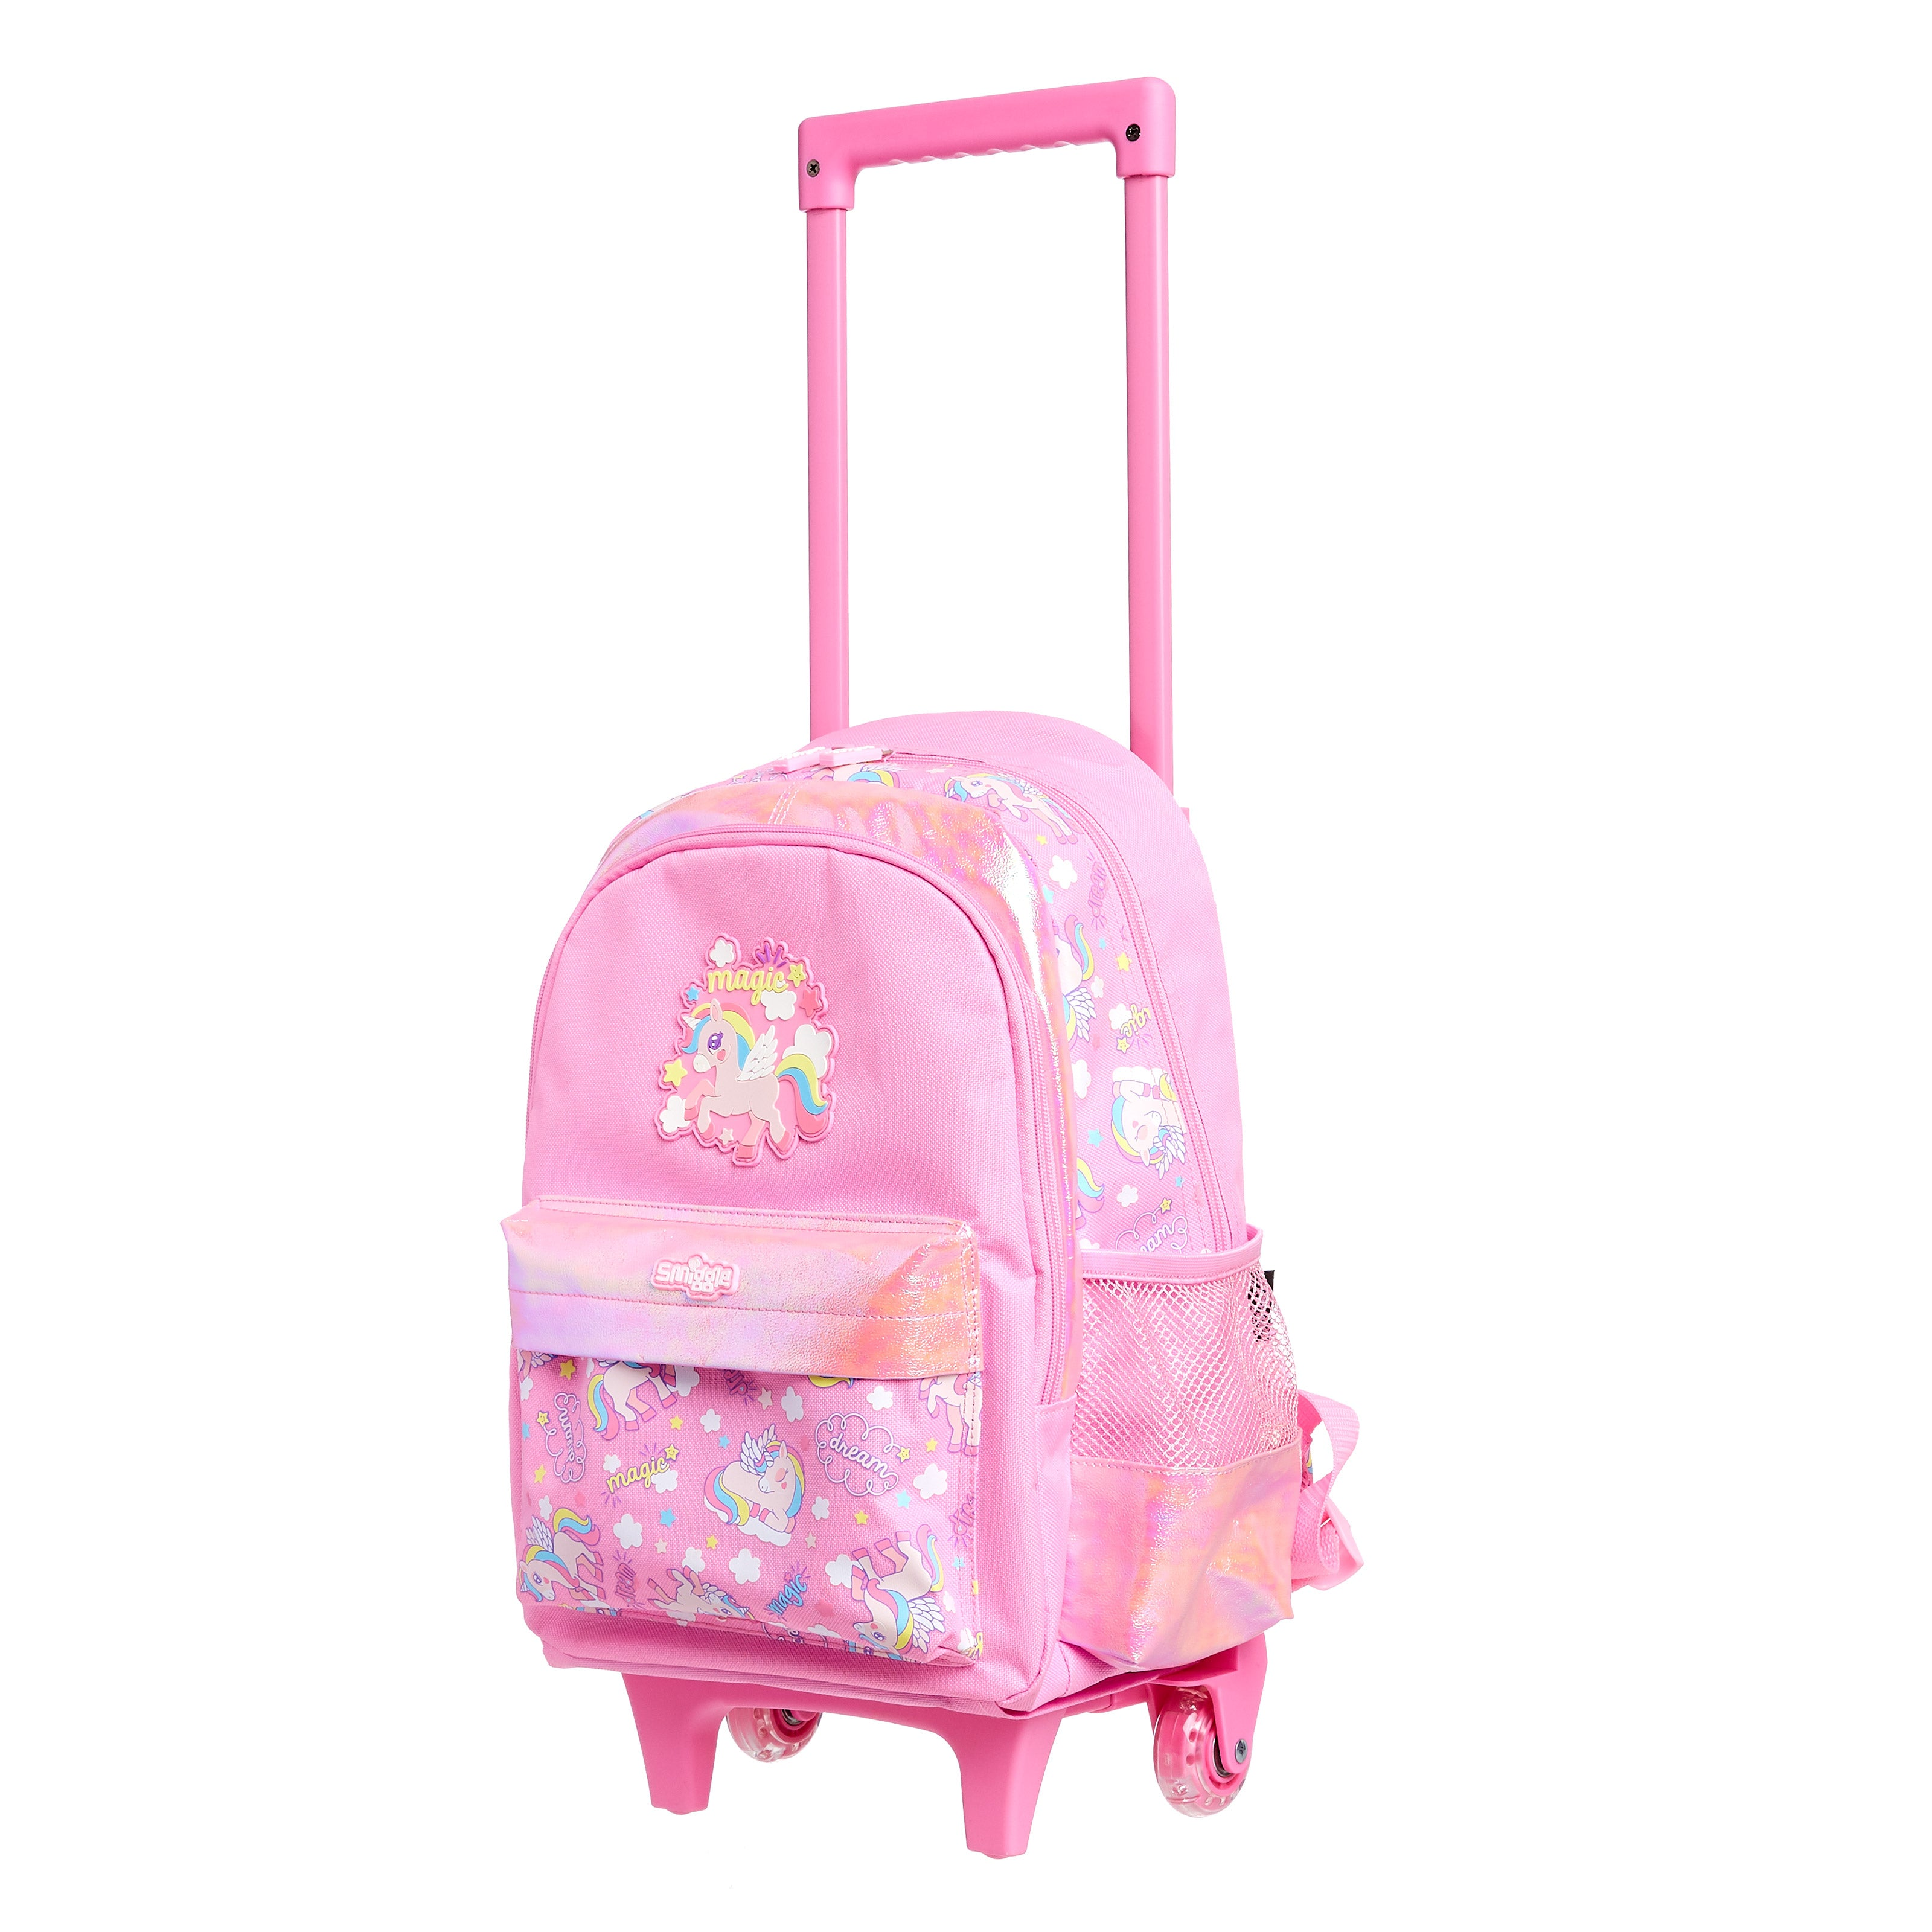 SMIGGLE - WONDER JUNIOR BACKPACK TROLLEY WITH LIGHT UP WHEELS PINK